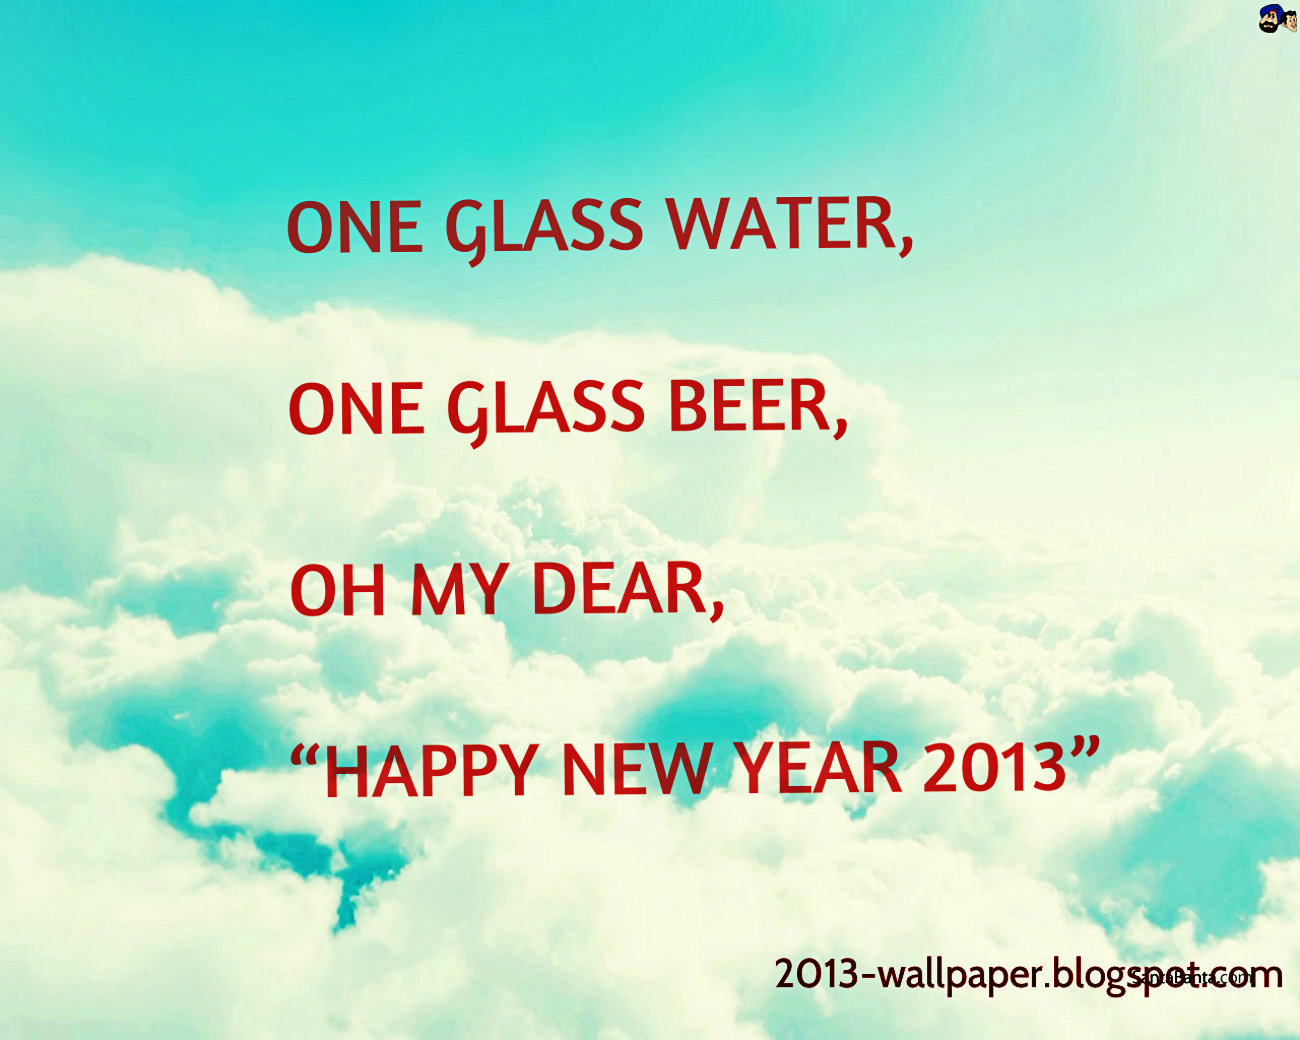 happynewyear2013smsquoteswallpaper2013wallpaperblogspotcom. 1300 x 1040.Happy New Year Animated Gif